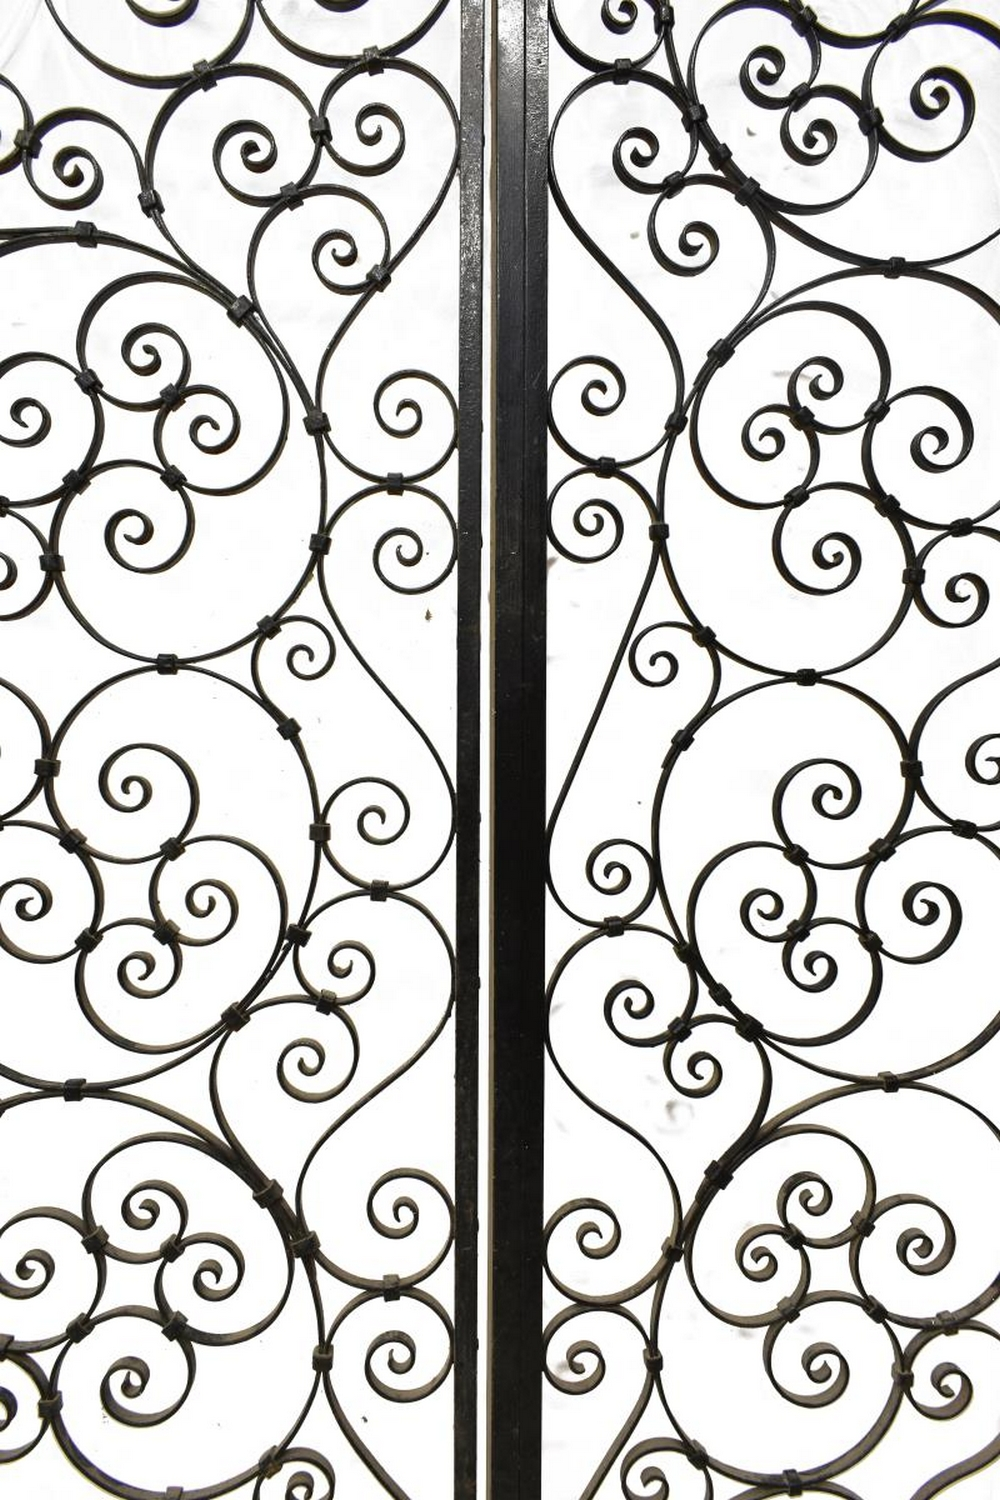 """Lot 536: FRENCH SCROLLED WROUGHT IRON GATE, 73.5"""" X 97.25"""""""